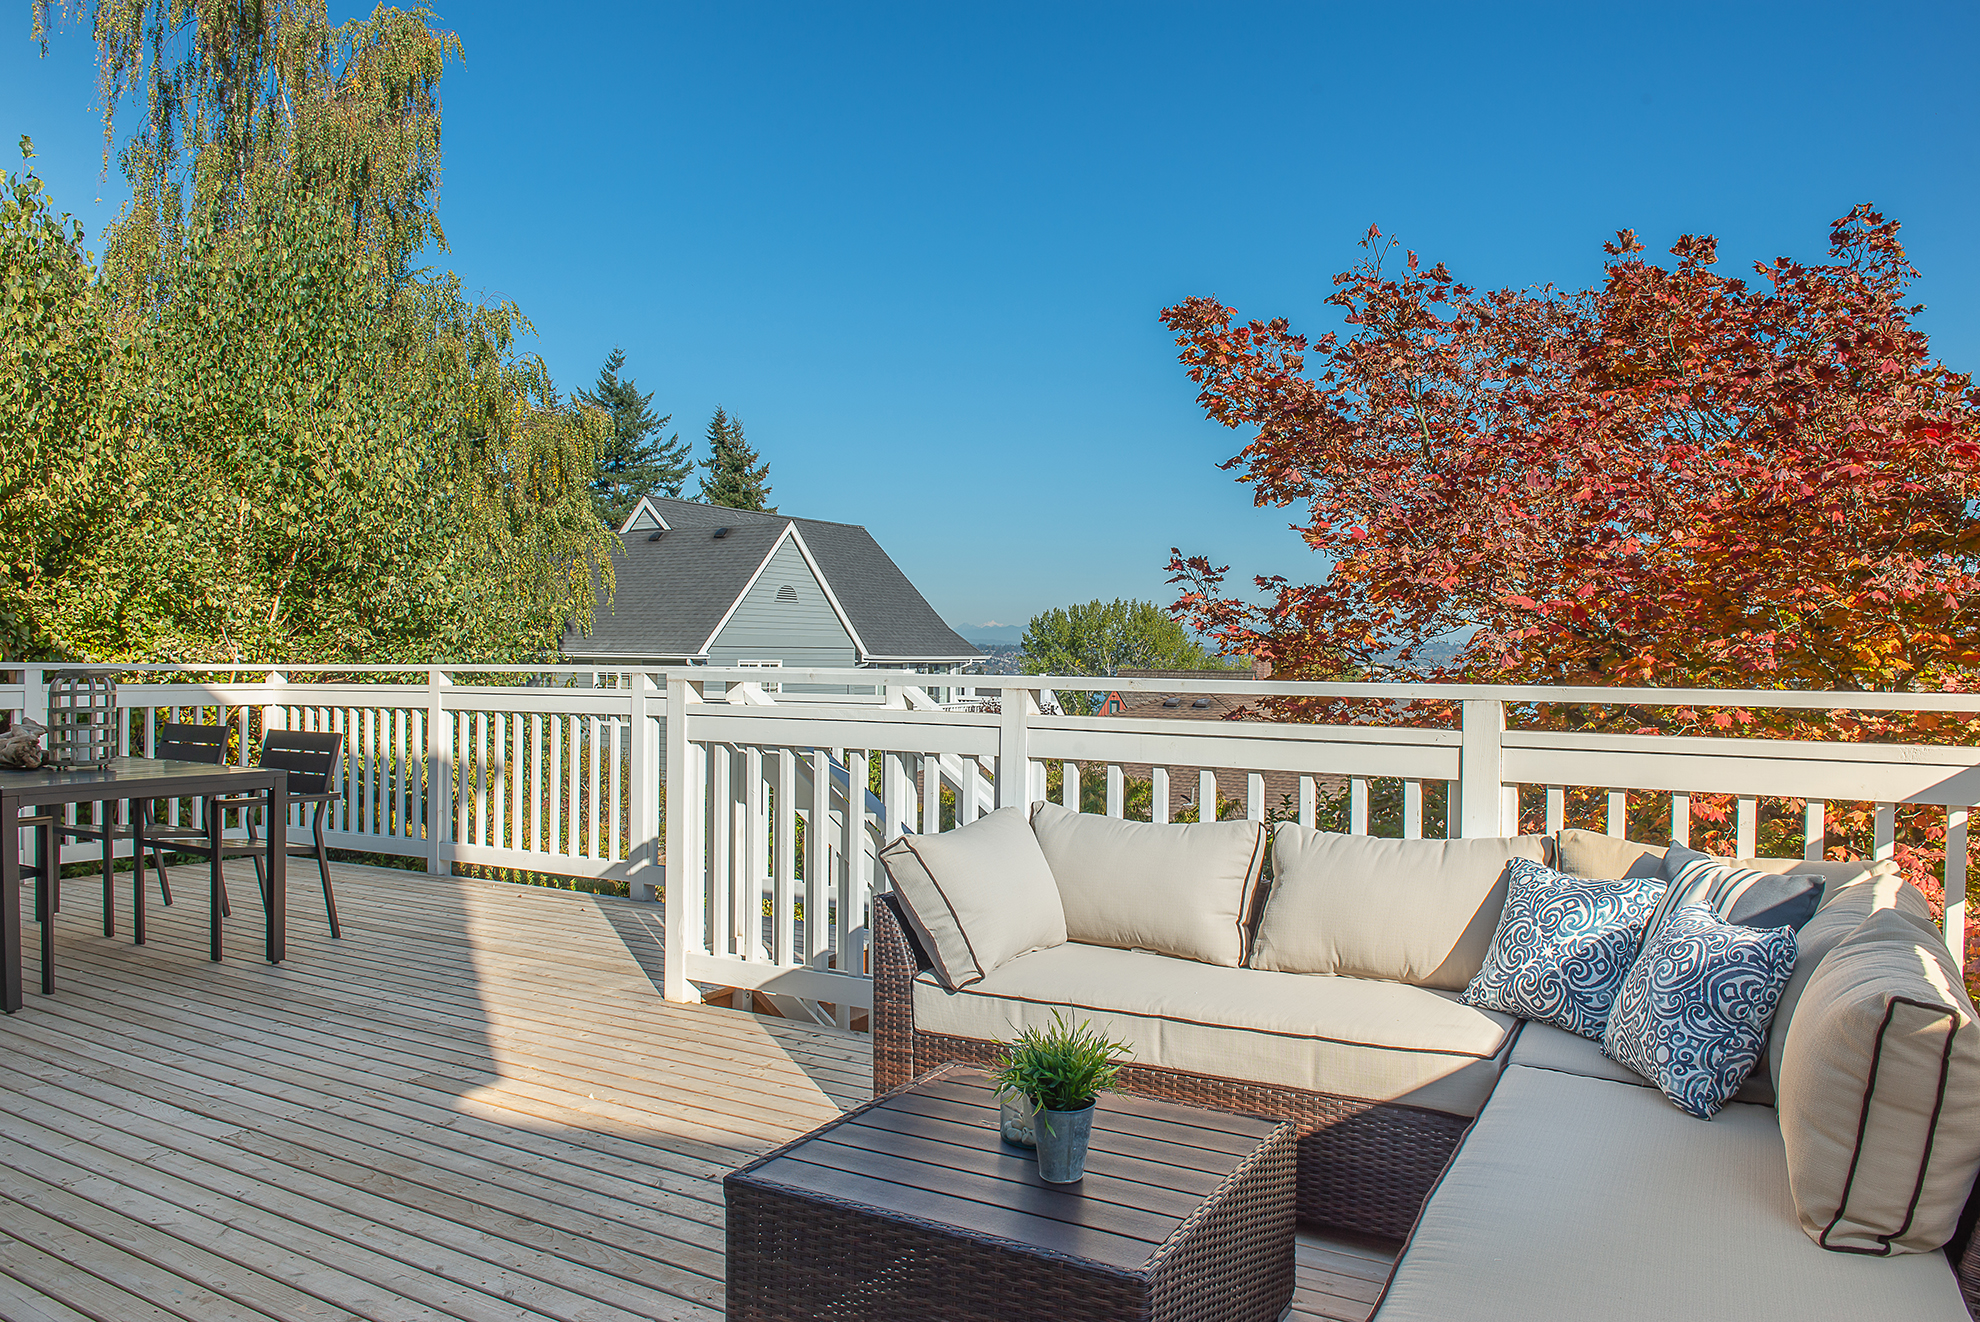 The views are stunning from this new deck